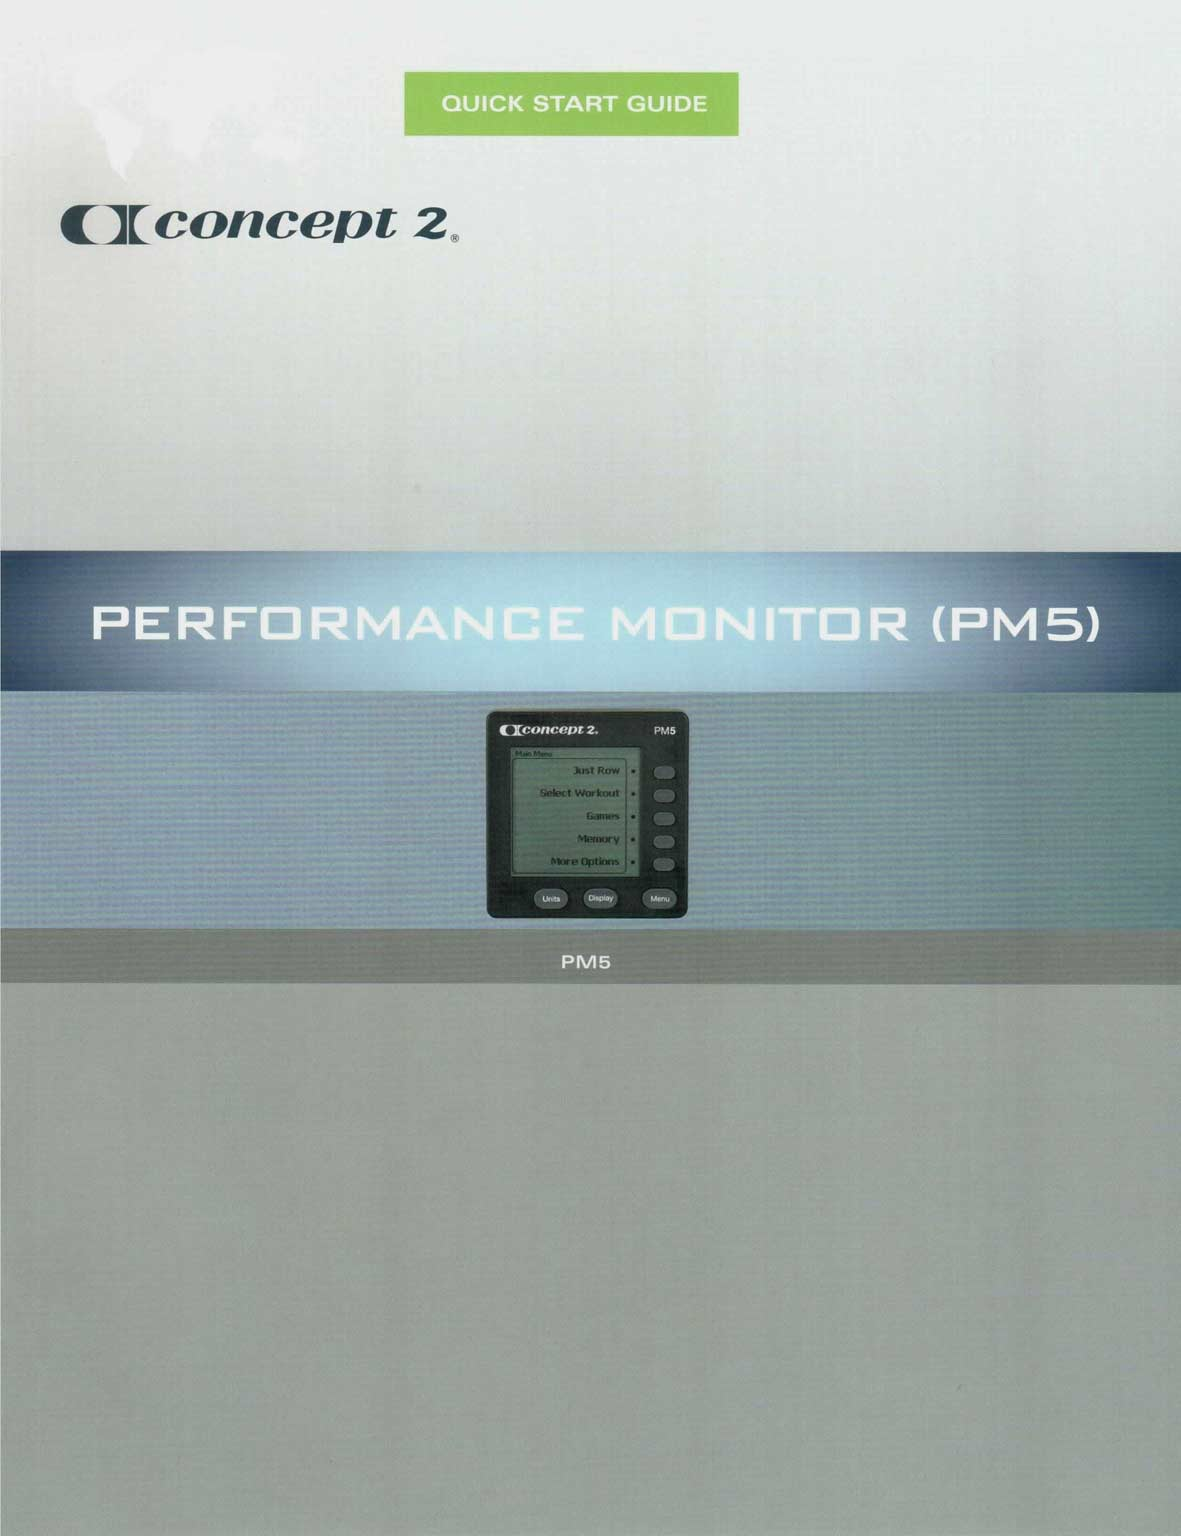 Descarga el Manual del Monitor de Rendimiento PM5 en pdf